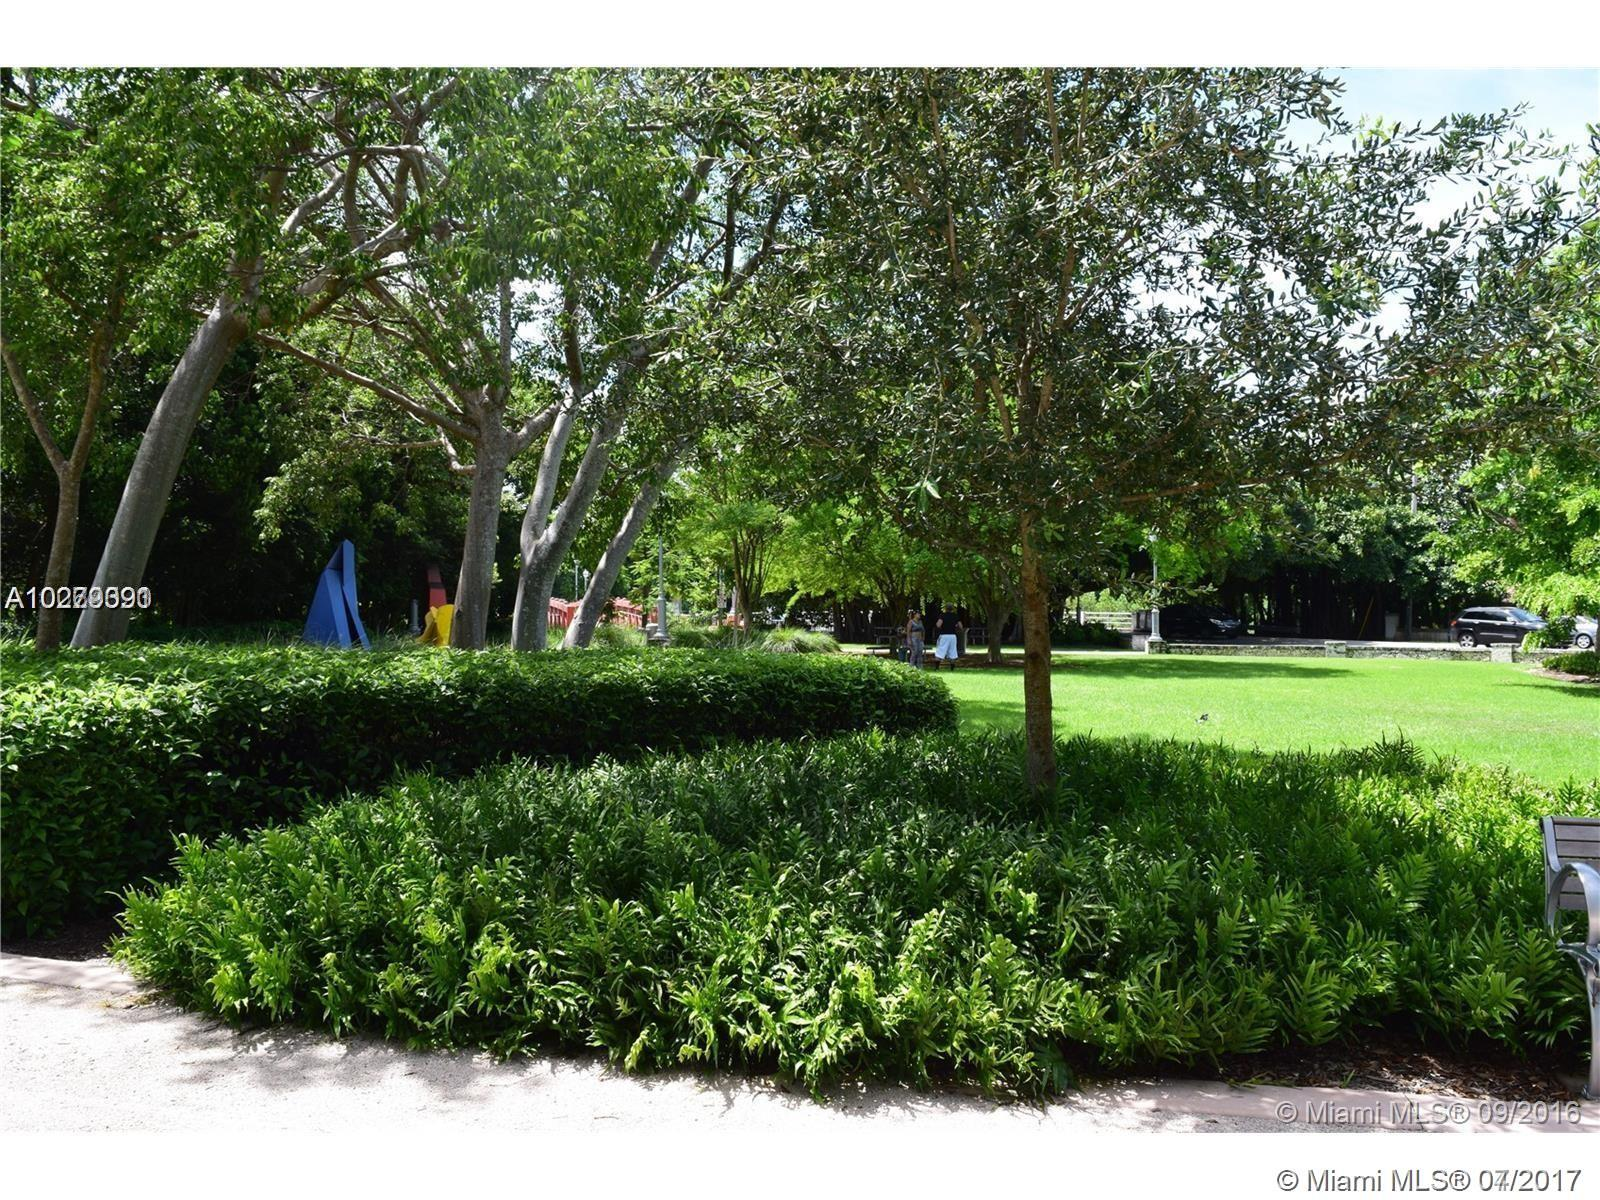 125 Edgewater Dr # 15, Coral Gables, FL 33133